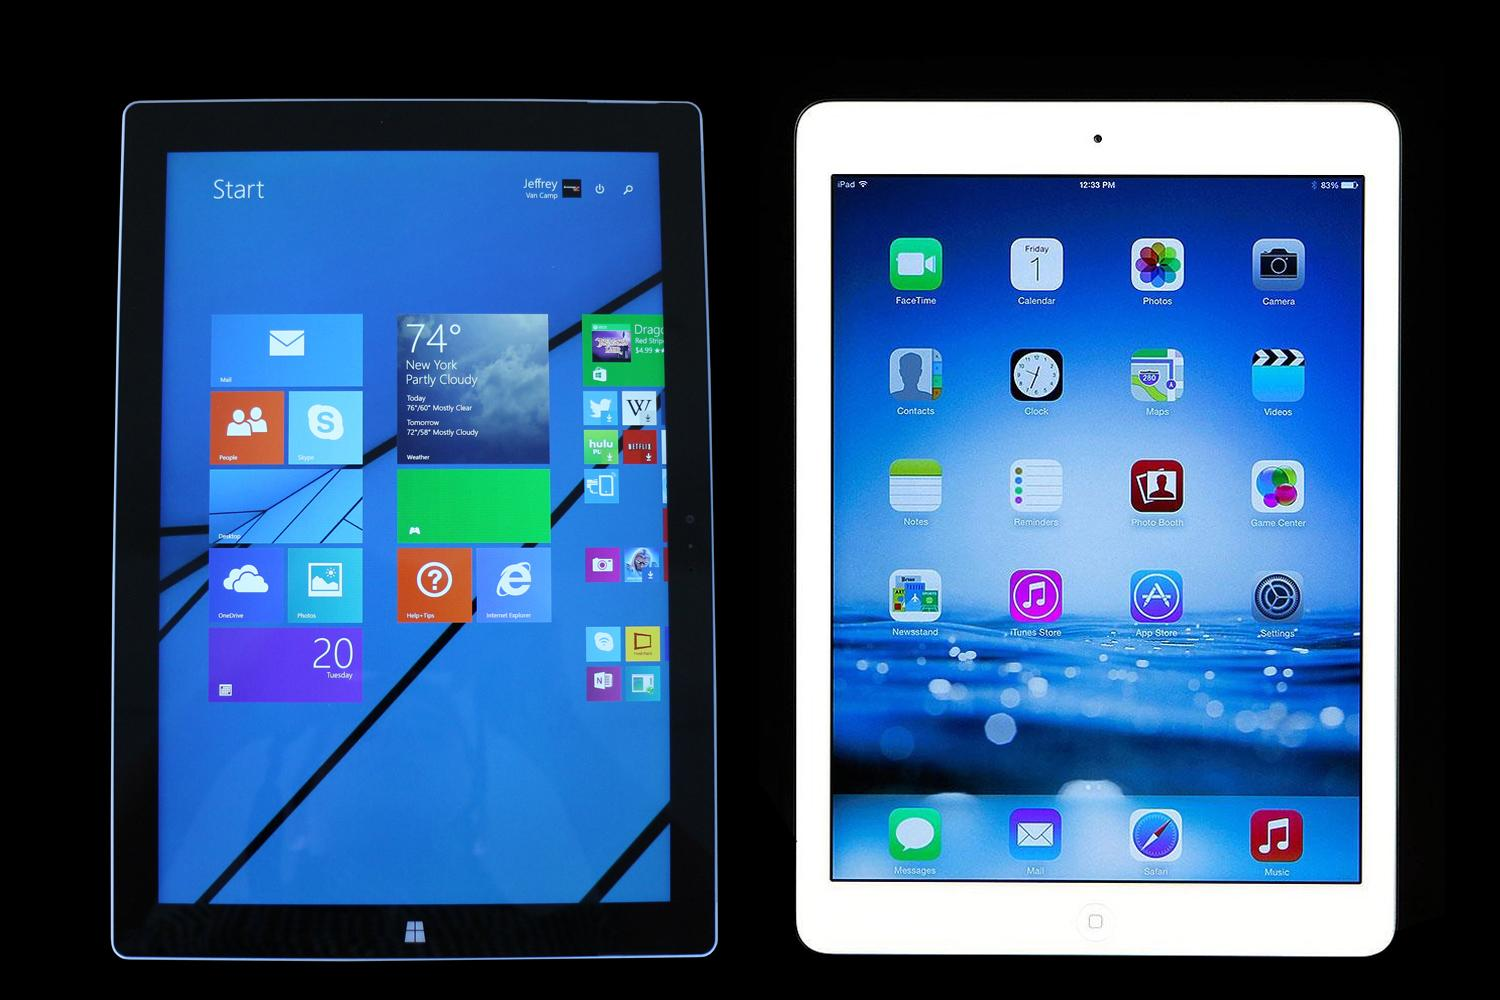 Kindle Vs Sony Reader: Surface Pro 3 Vs. IPad Air: Spec Comparison